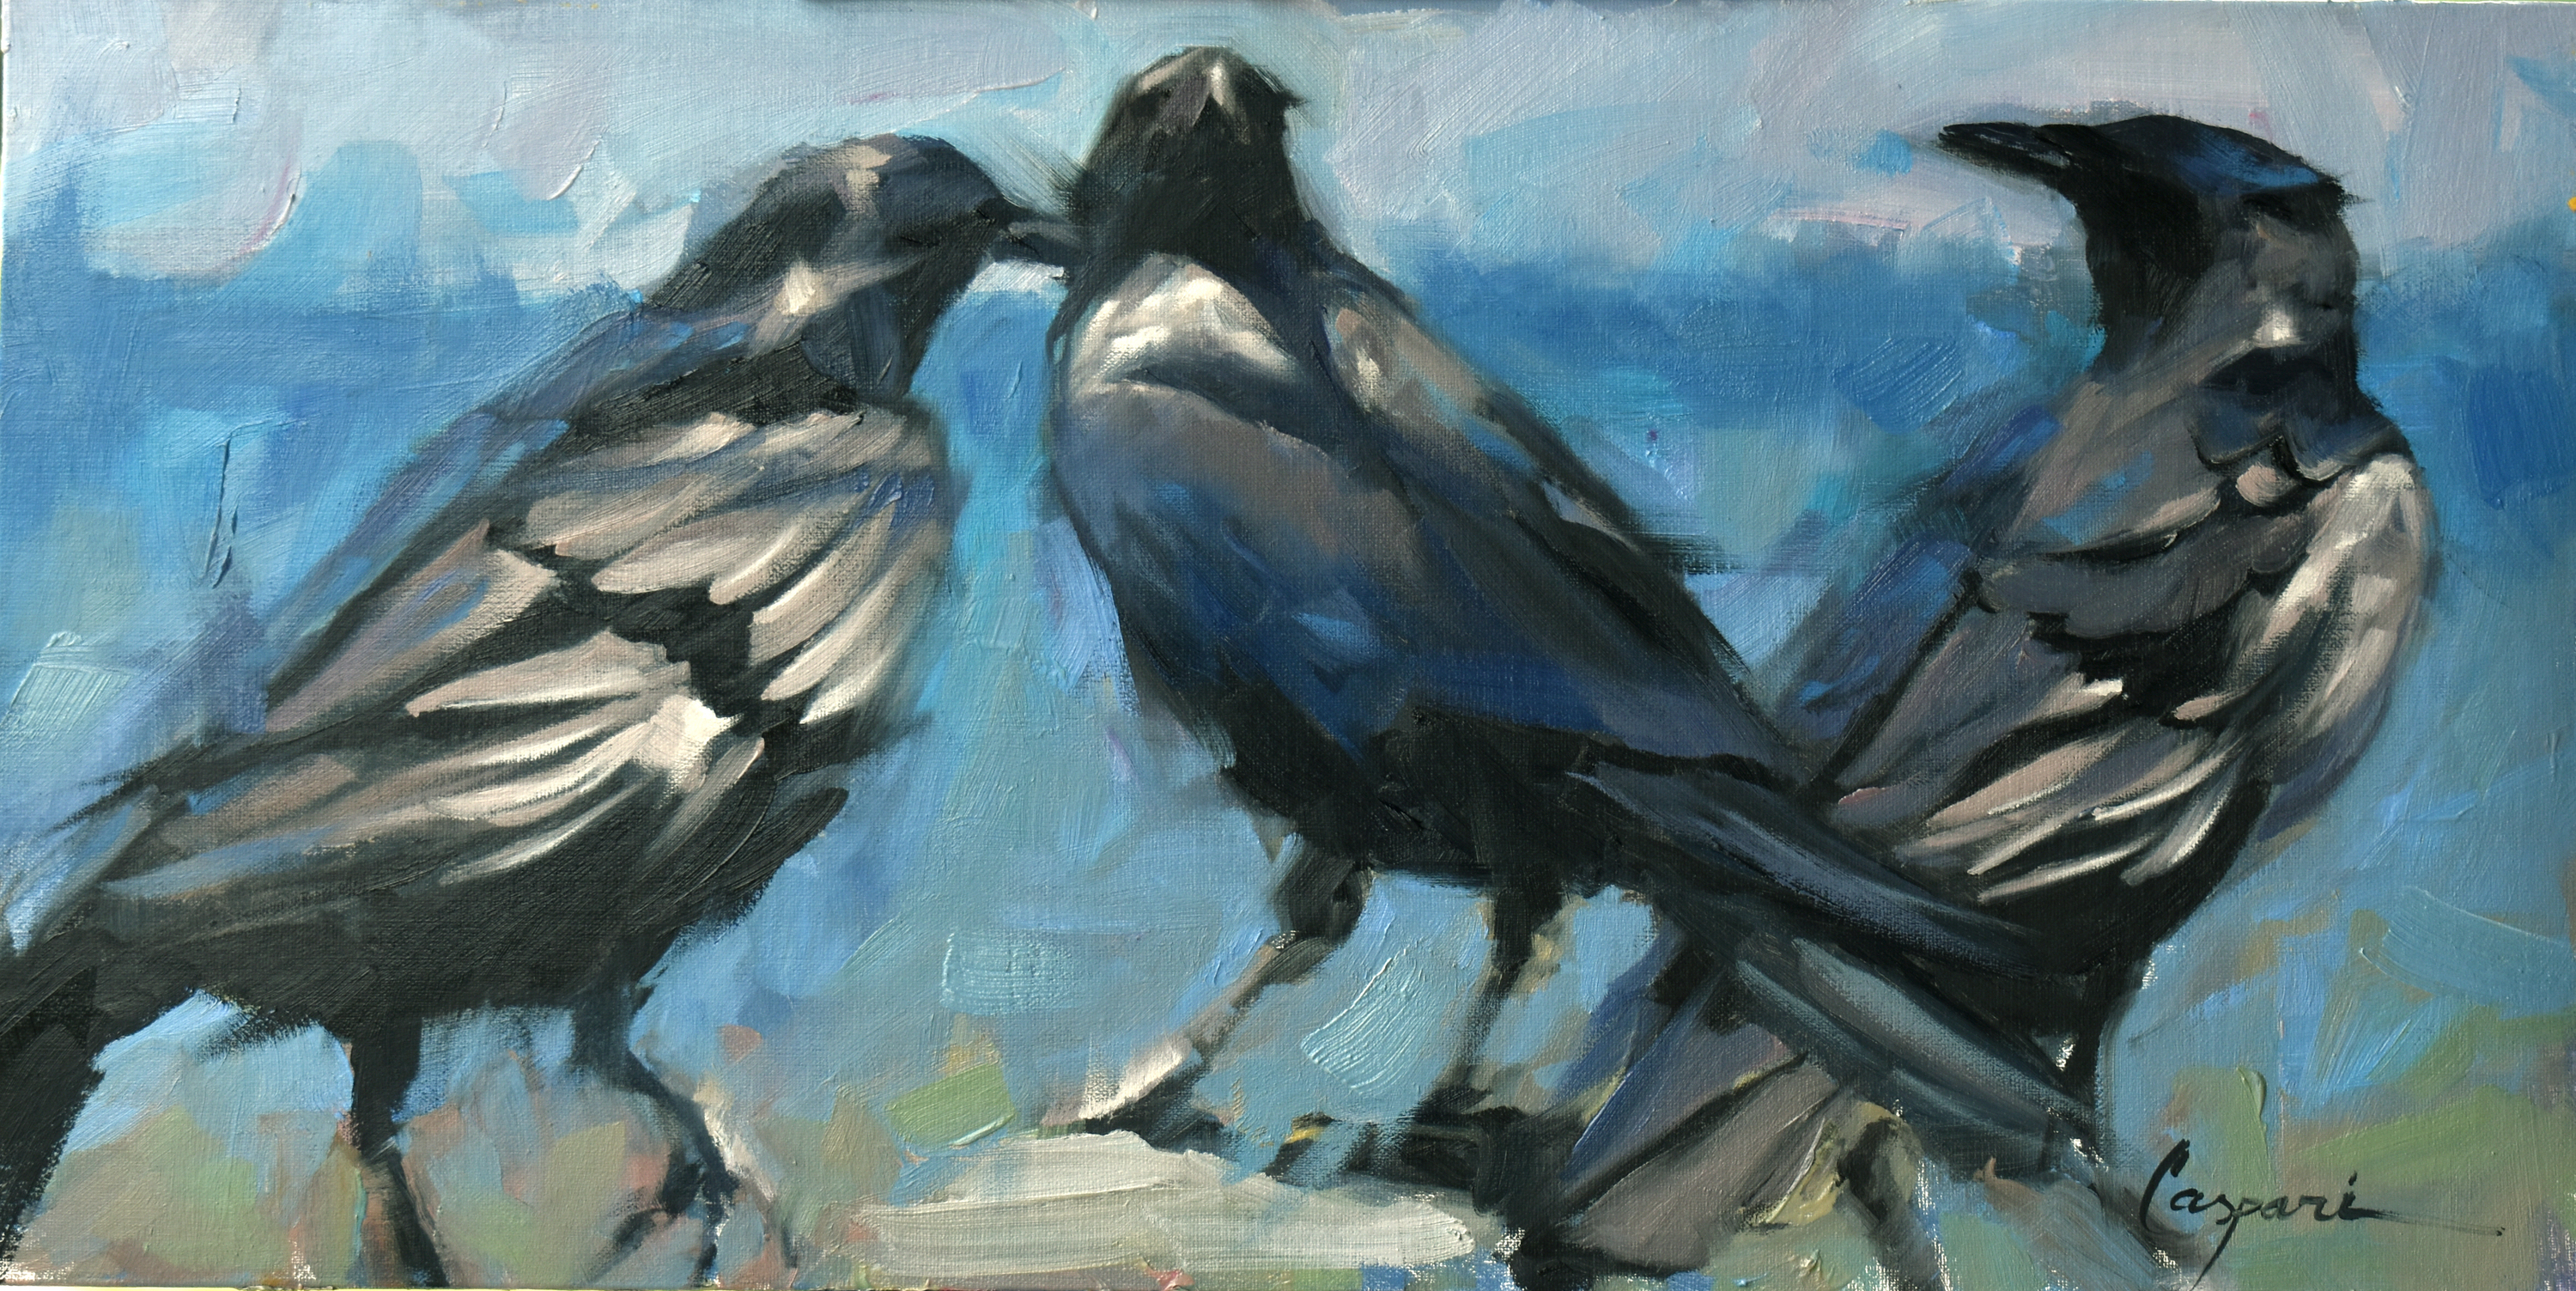 3 crows 20x10 oil 2020 uic7fv